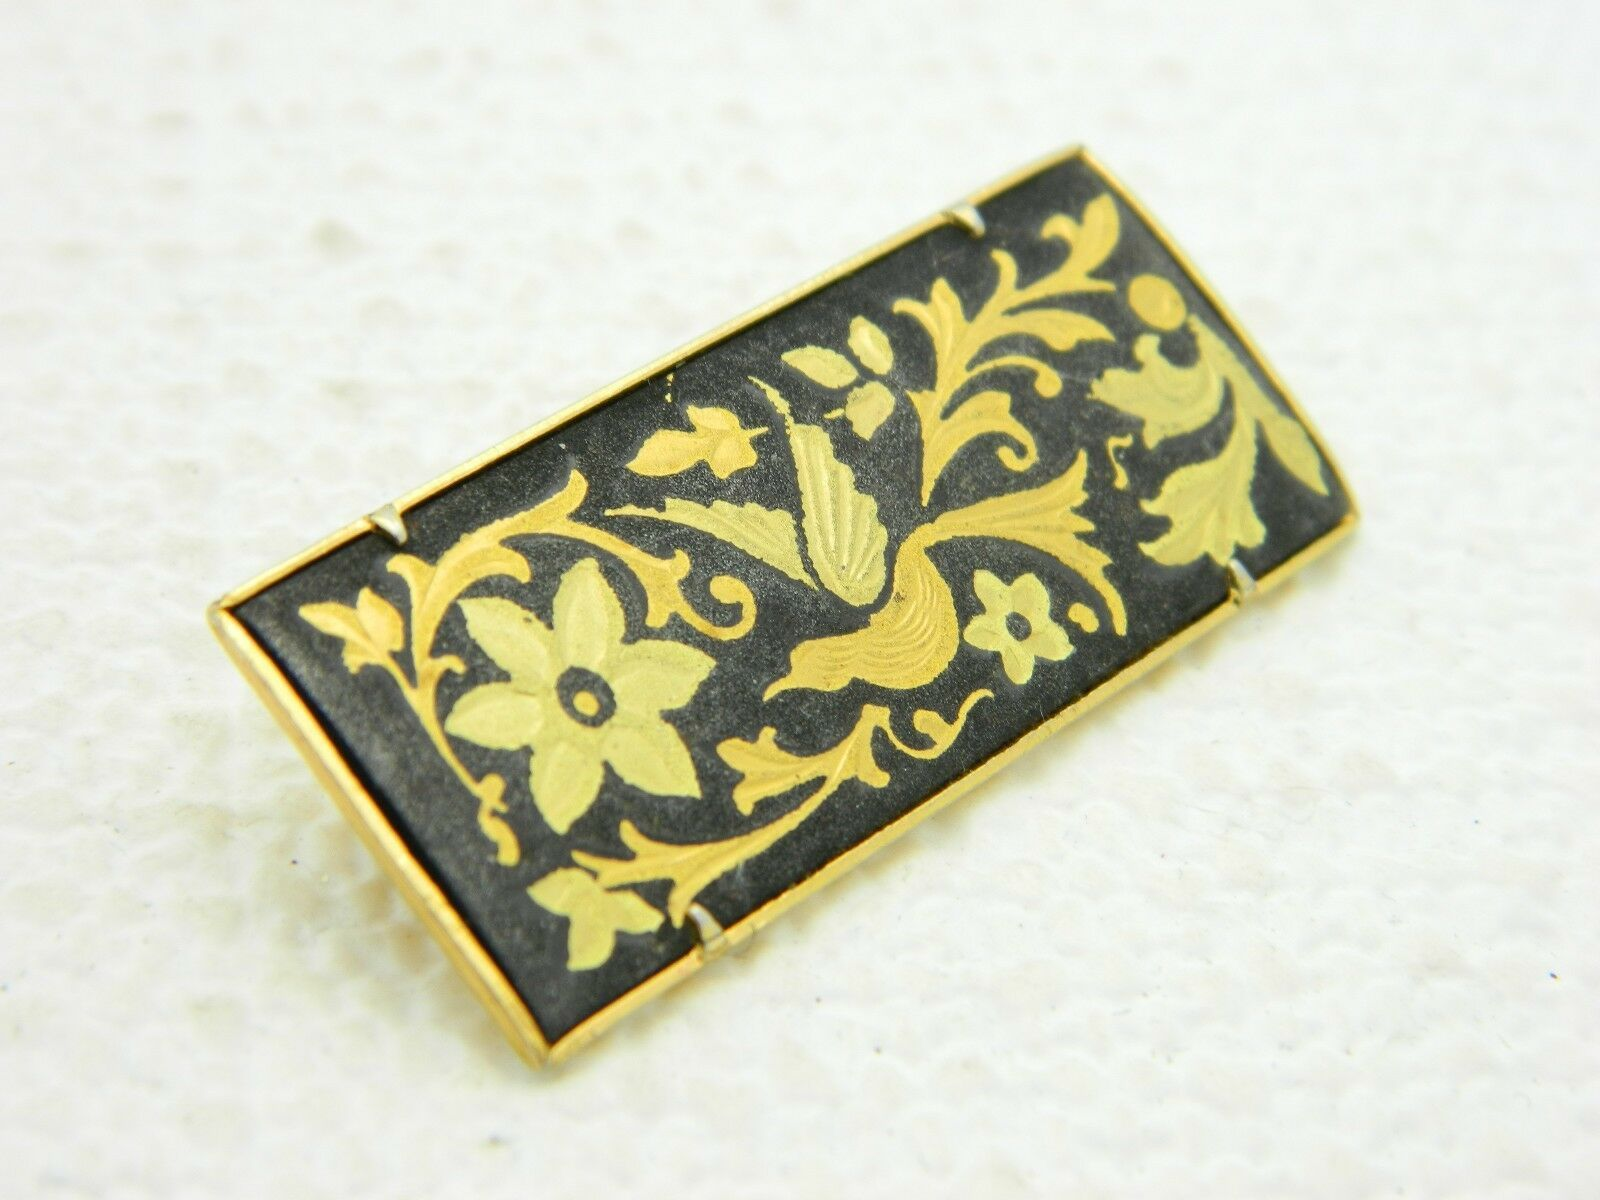 VTG 1940s Gold Tone Damascene Floral Bird Pin Brooch Trombone Clasp image 2